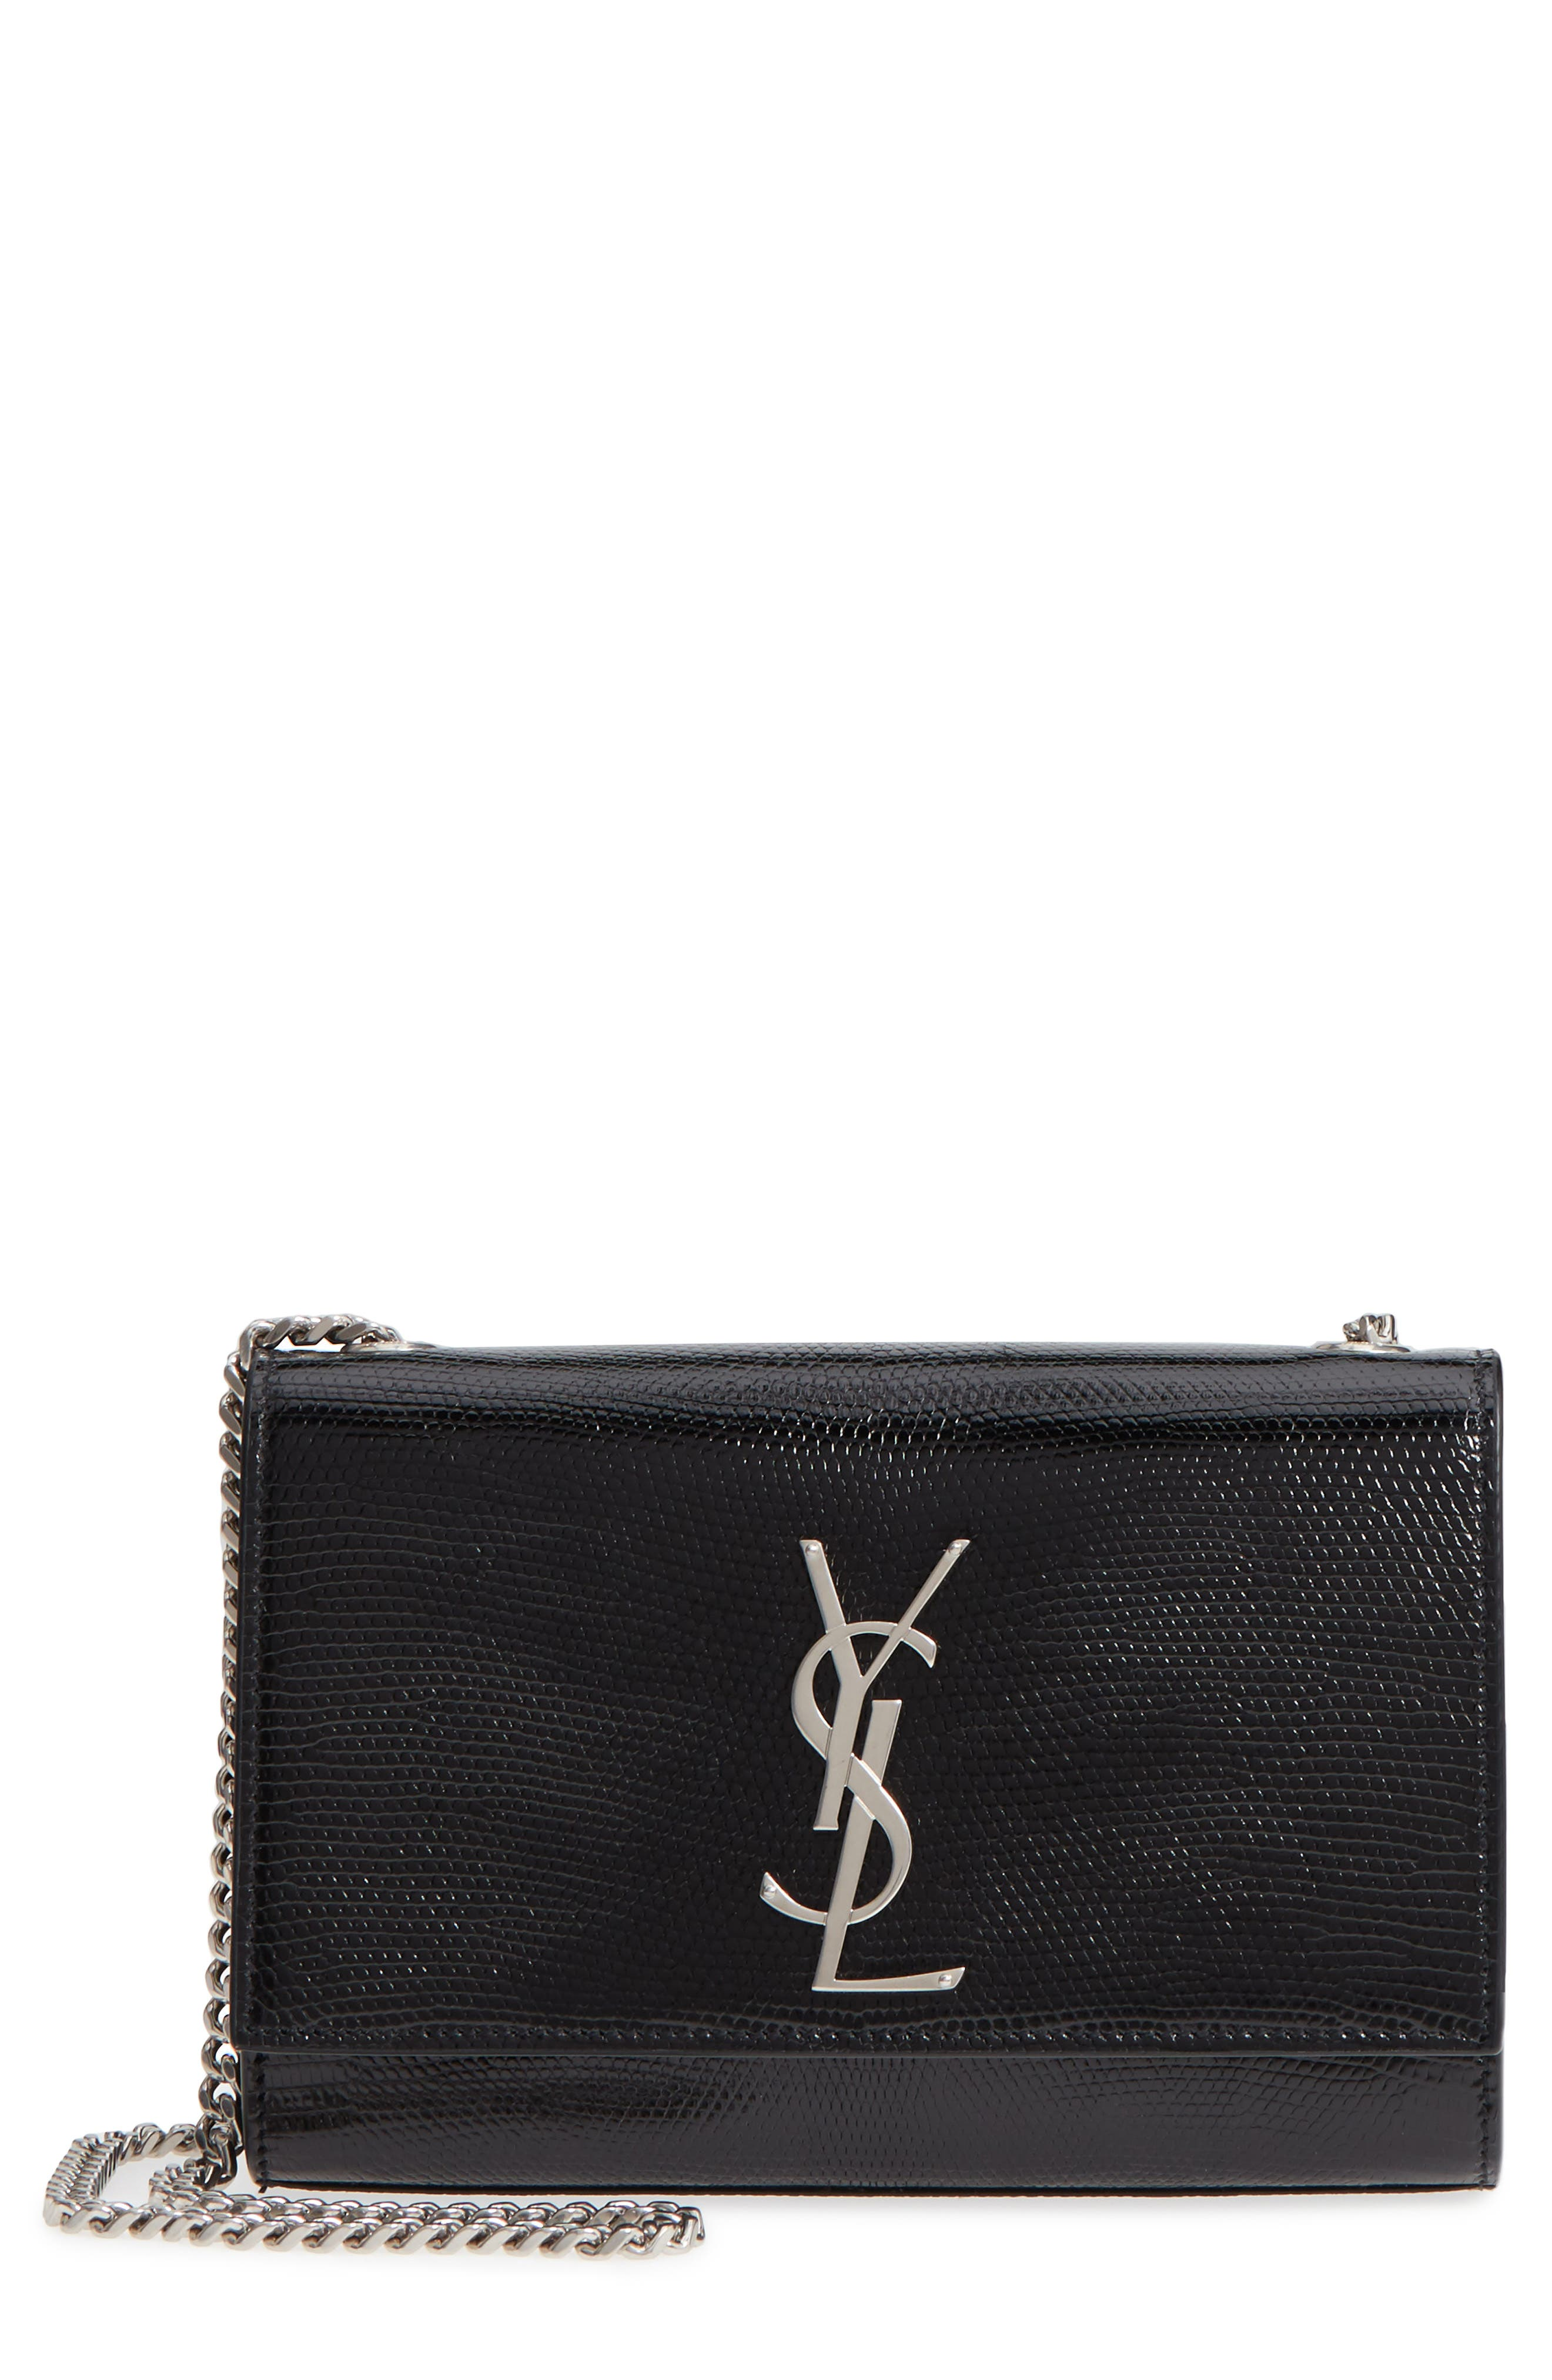 Saint Laurent Small Kate Lizard Leather Crossbody Bag